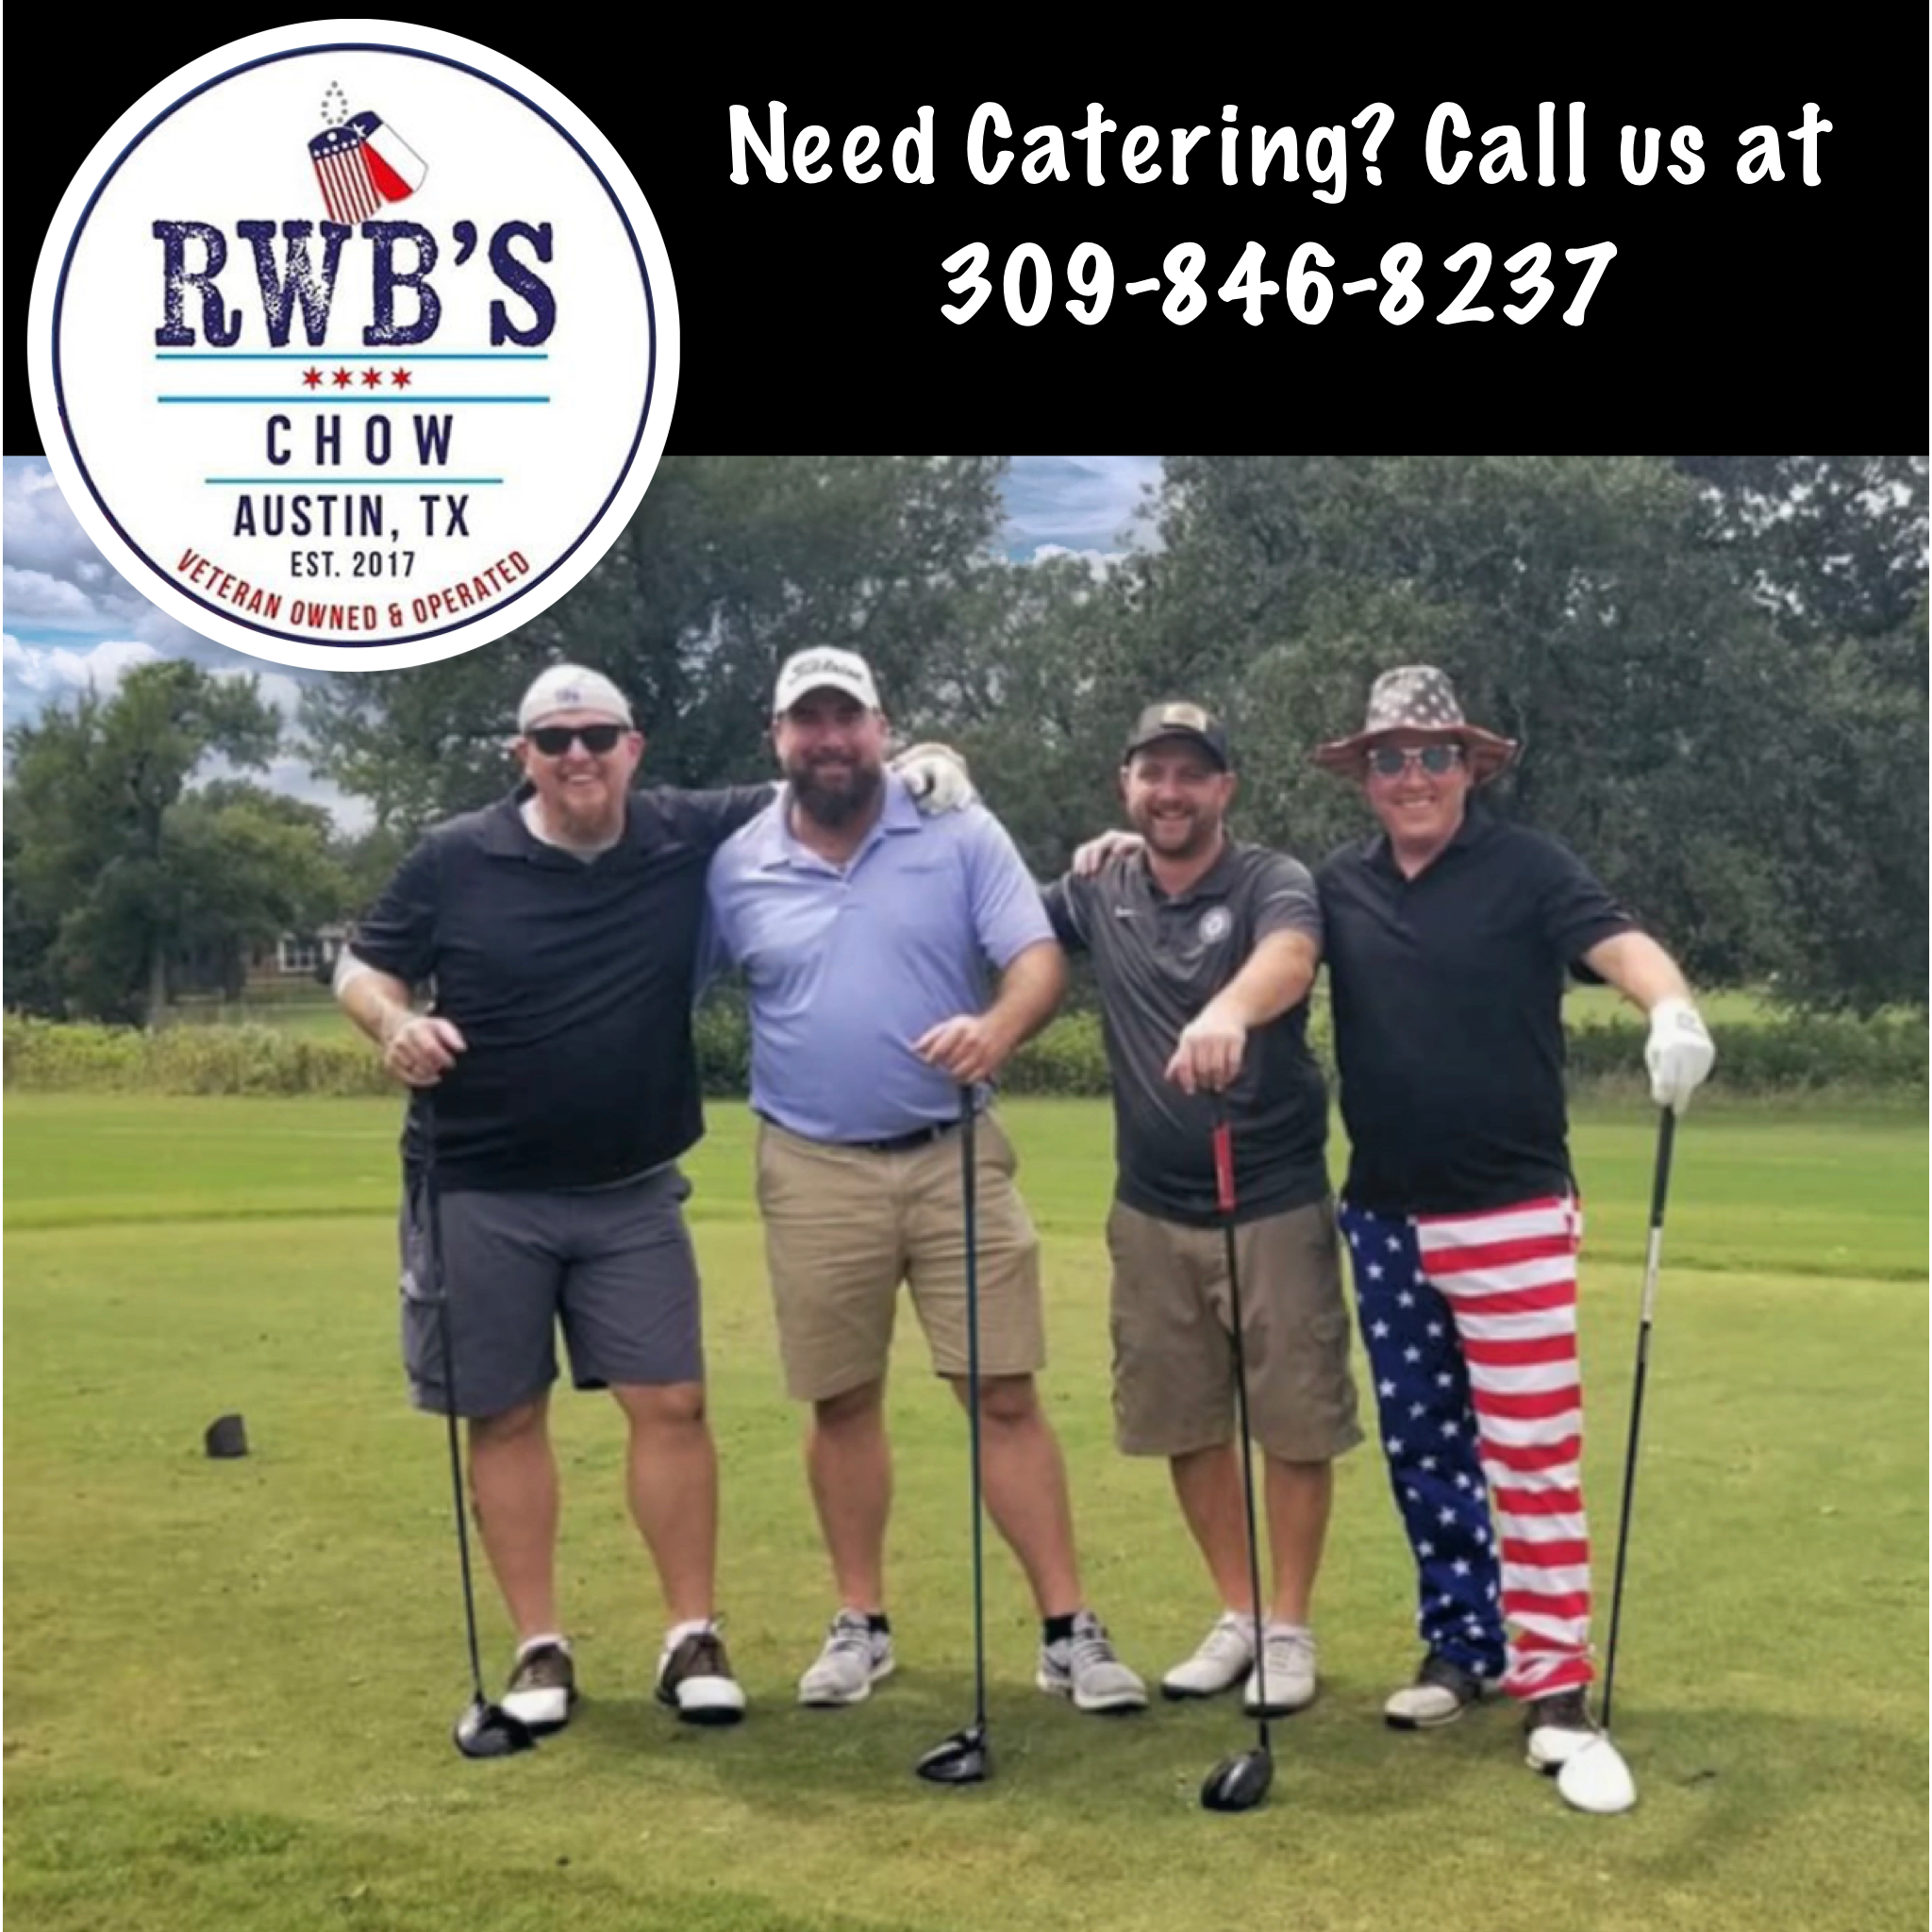 Nothing Says Murica Like Golf Flag Pants Brothers And Veteran Founded Groups Competing In Our First Sponsored Golf Tour In 2020 Rwb Chow Chow Veterans Donations